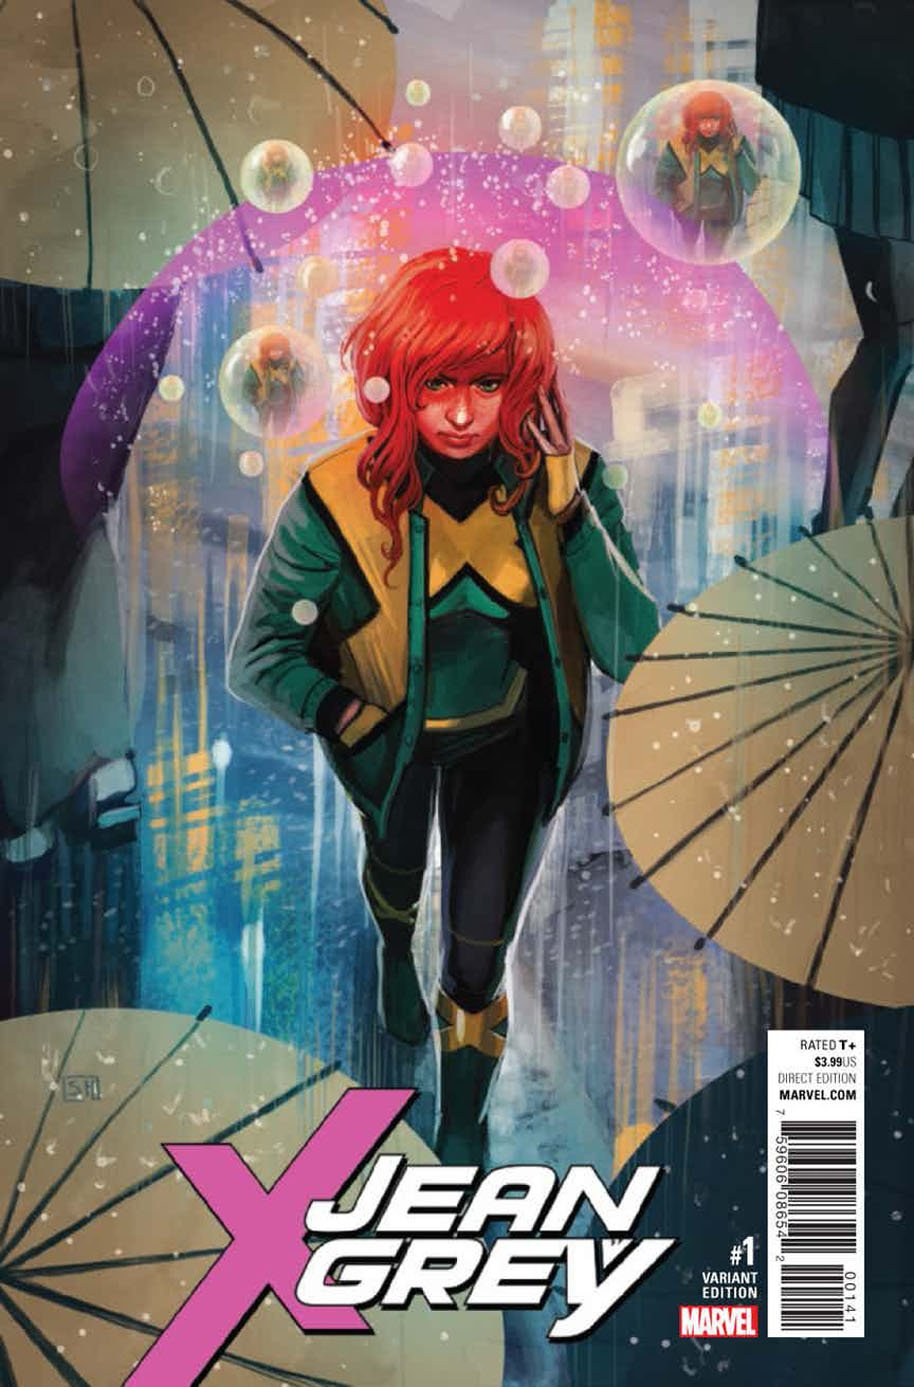 Jean Grey 1 variant cover